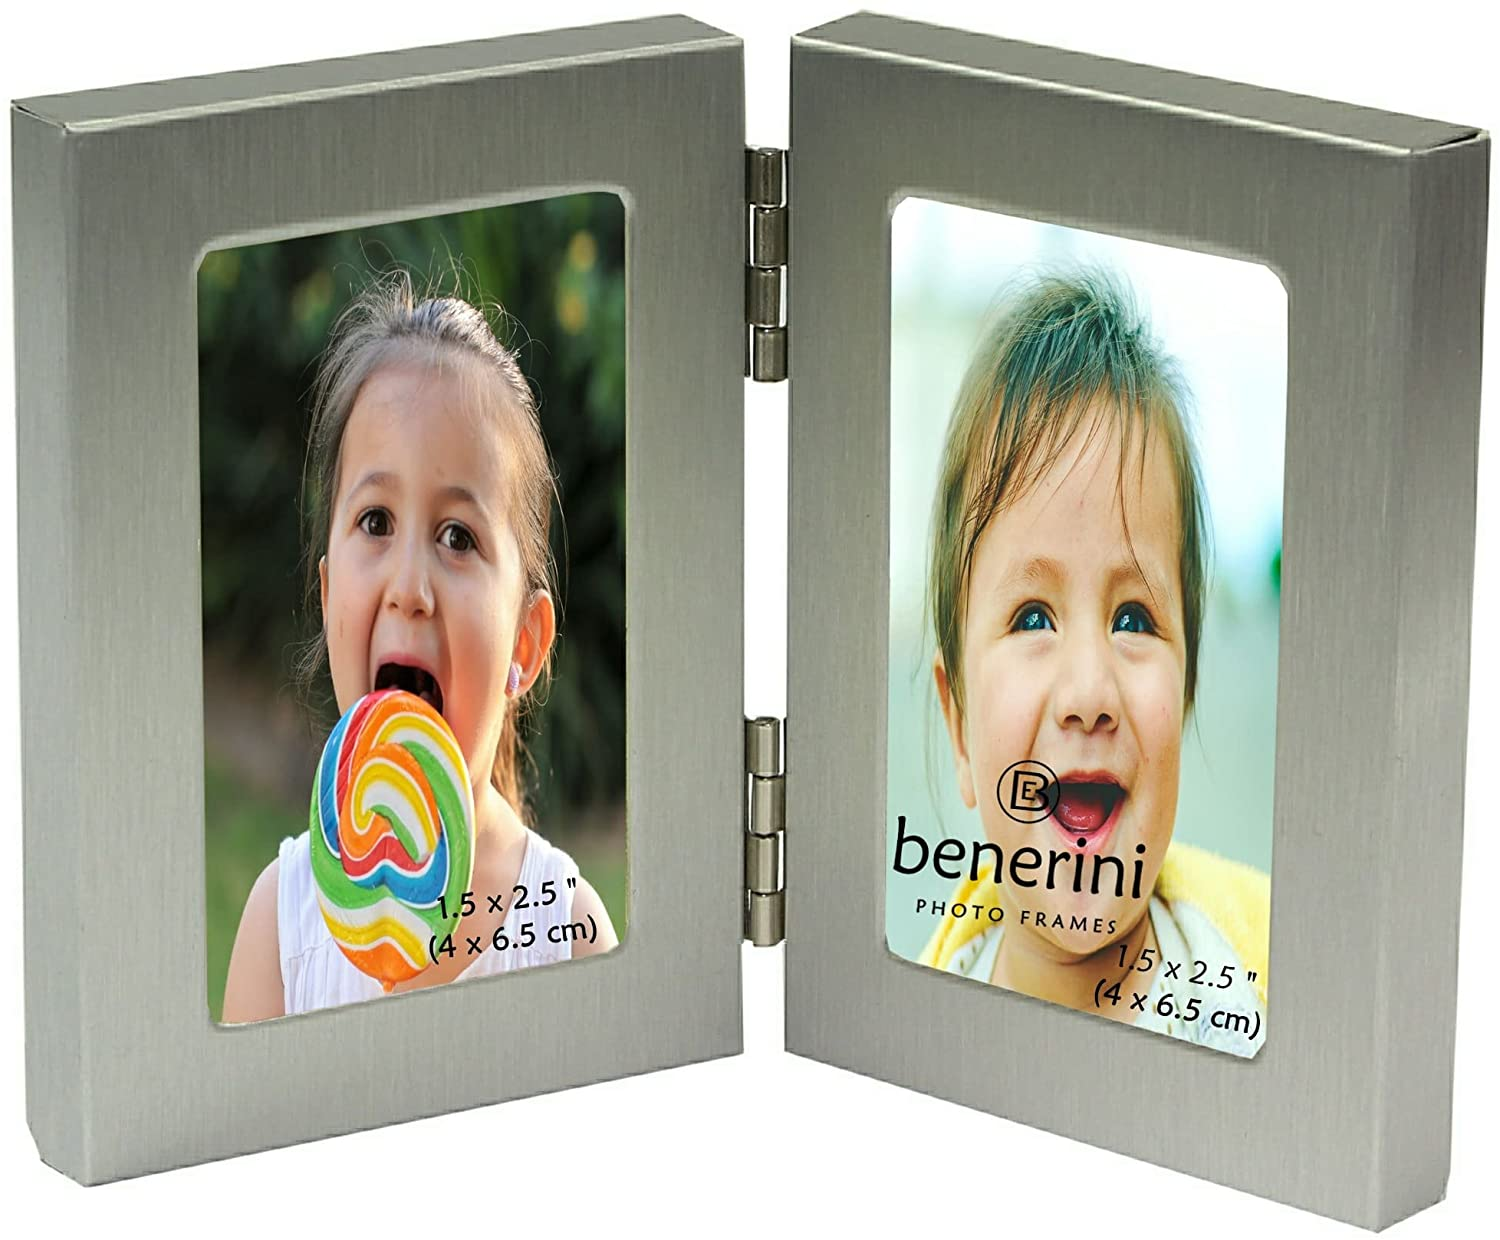 benerini Brushed Aluminium Satin Silver Colour - Miniature Twin 2 Picture Vertical Double Folding Photo Frame - Takes 2 Photos of 1.5 x 2.5 Inches (4 x 6.5 cm) (Portrait Style)